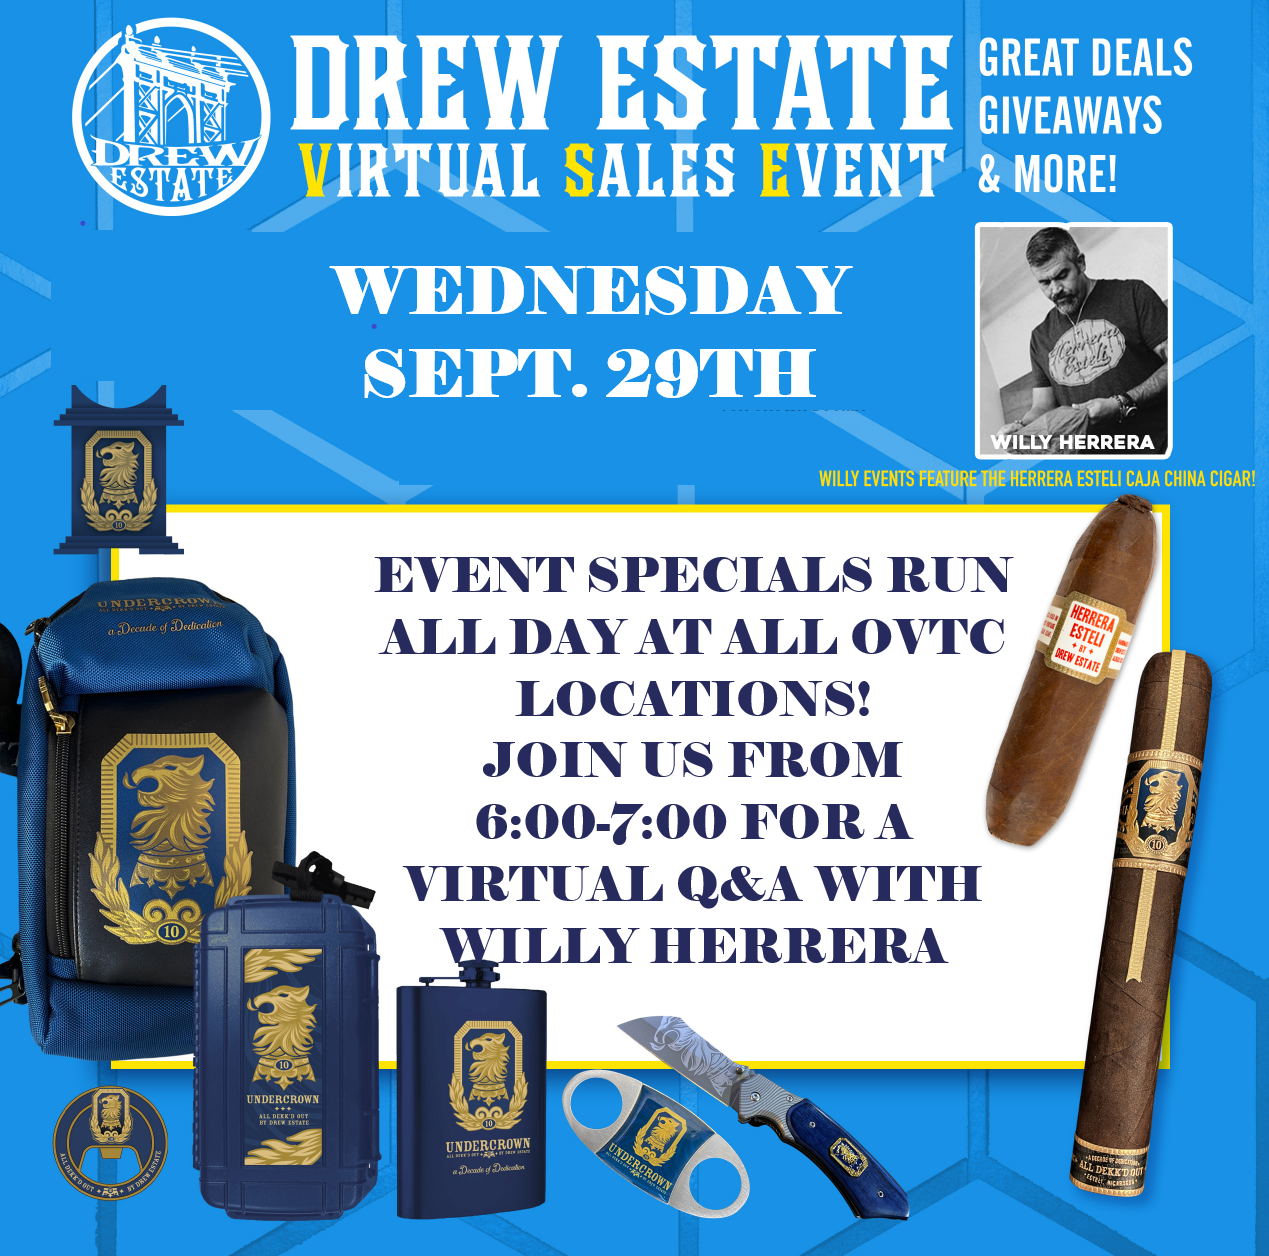 Drew Estate Cigars Virtual Sales Event with Live Q&A featuring Willy Herrera